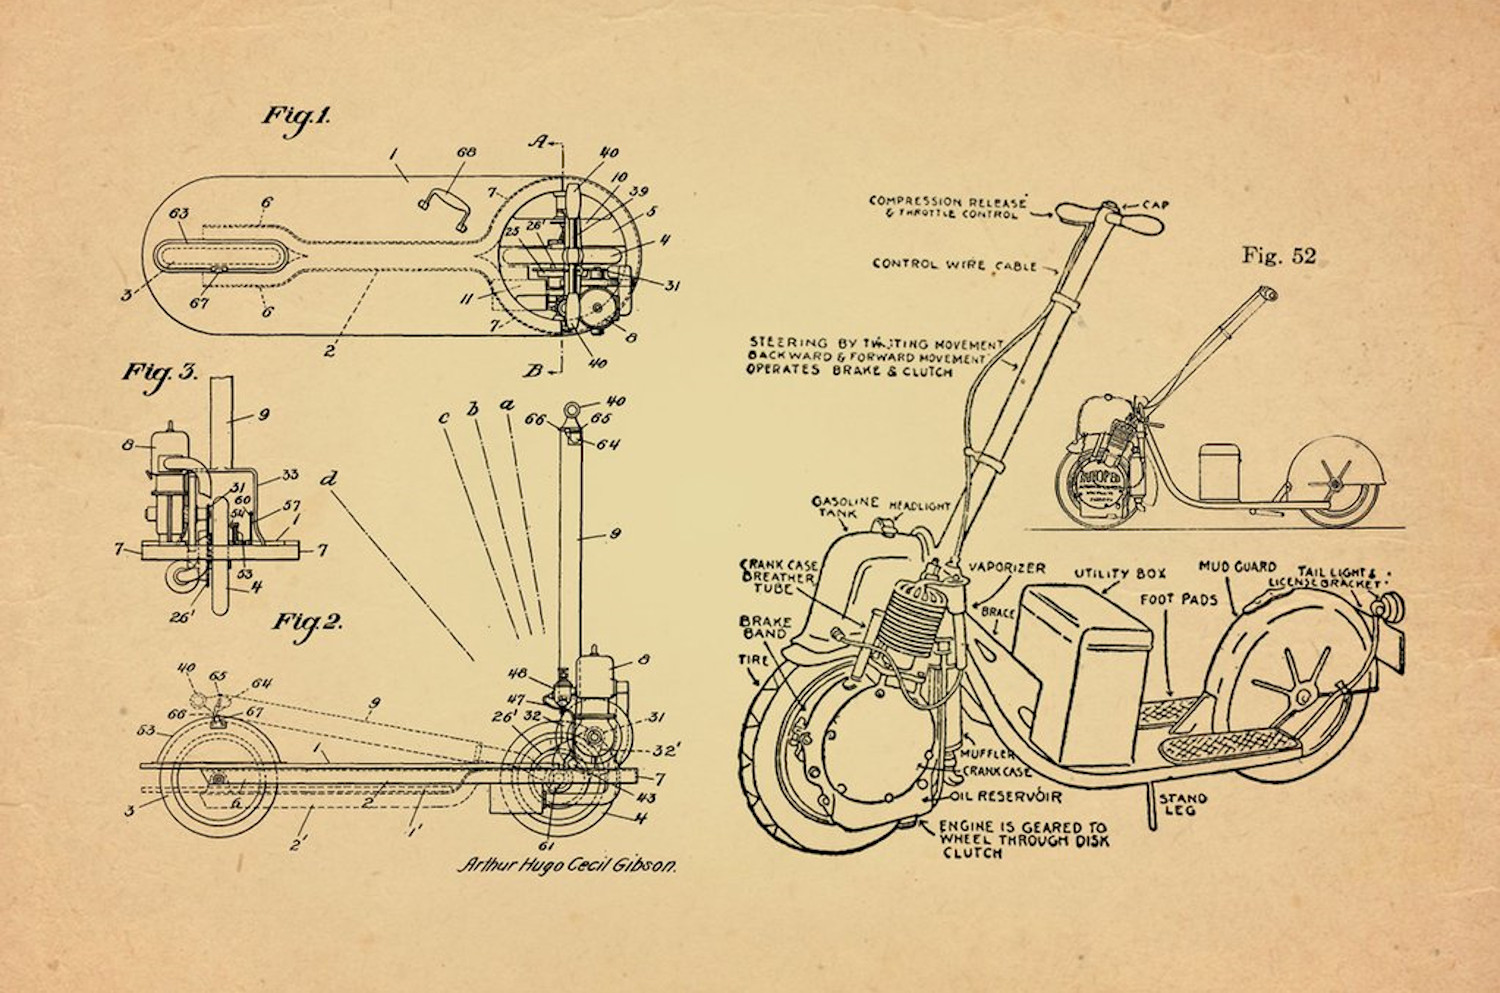 Design drawings depicting the components of the Autoped, the first electric scooter.